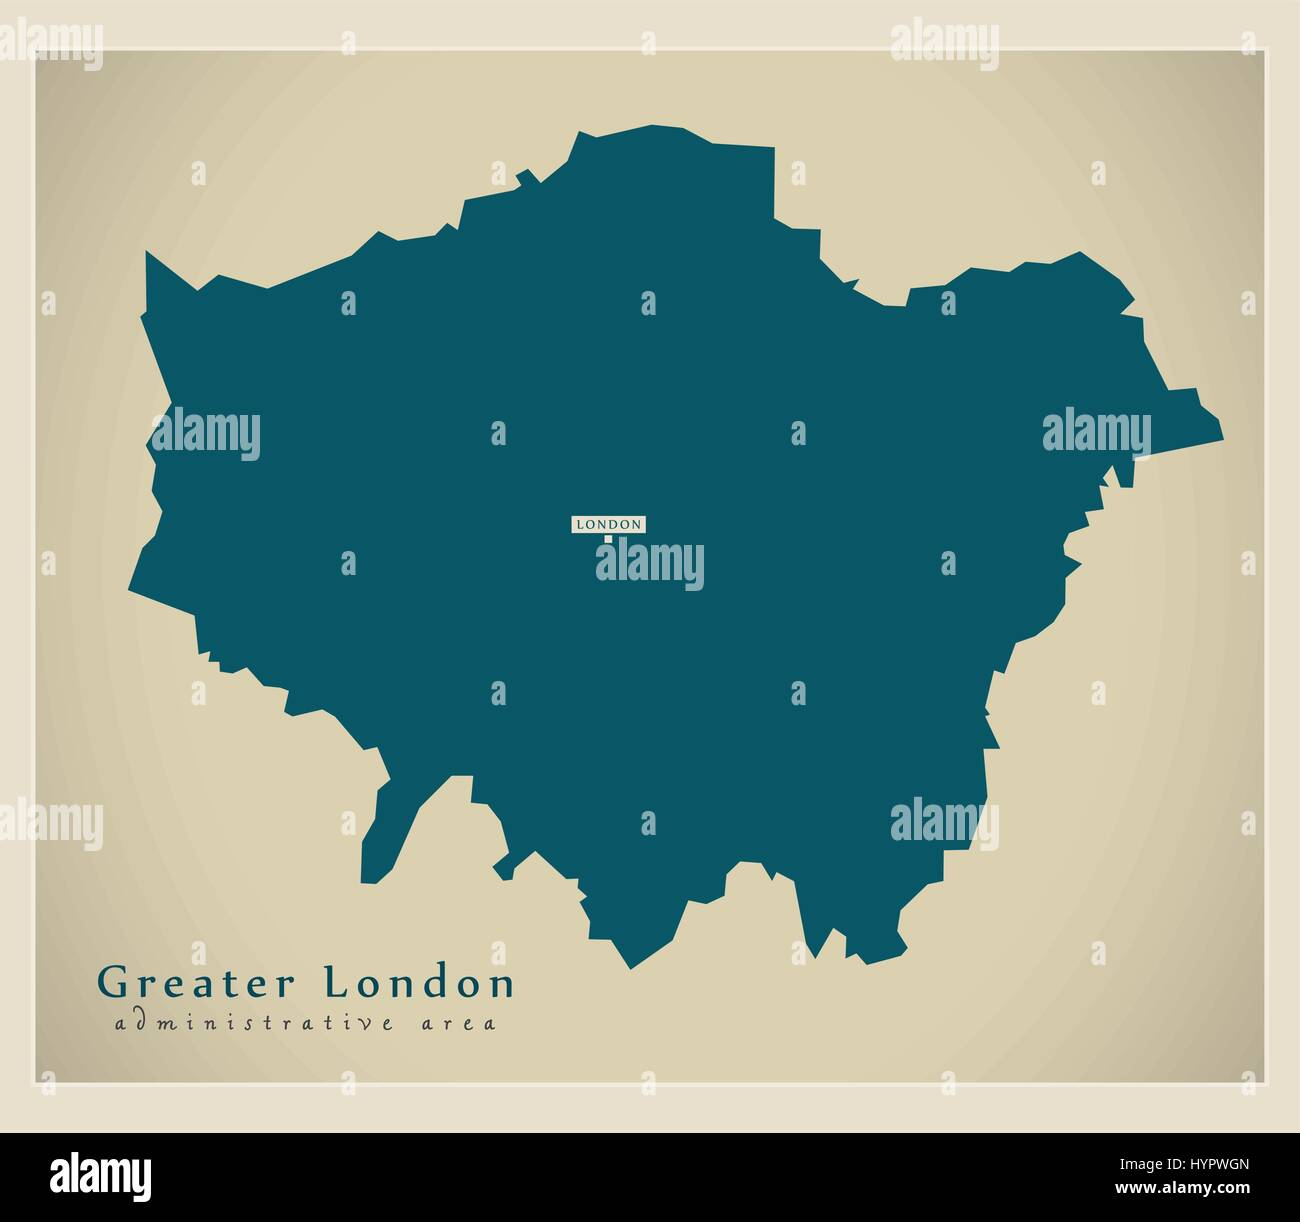 Modern Map Greater London administrative area